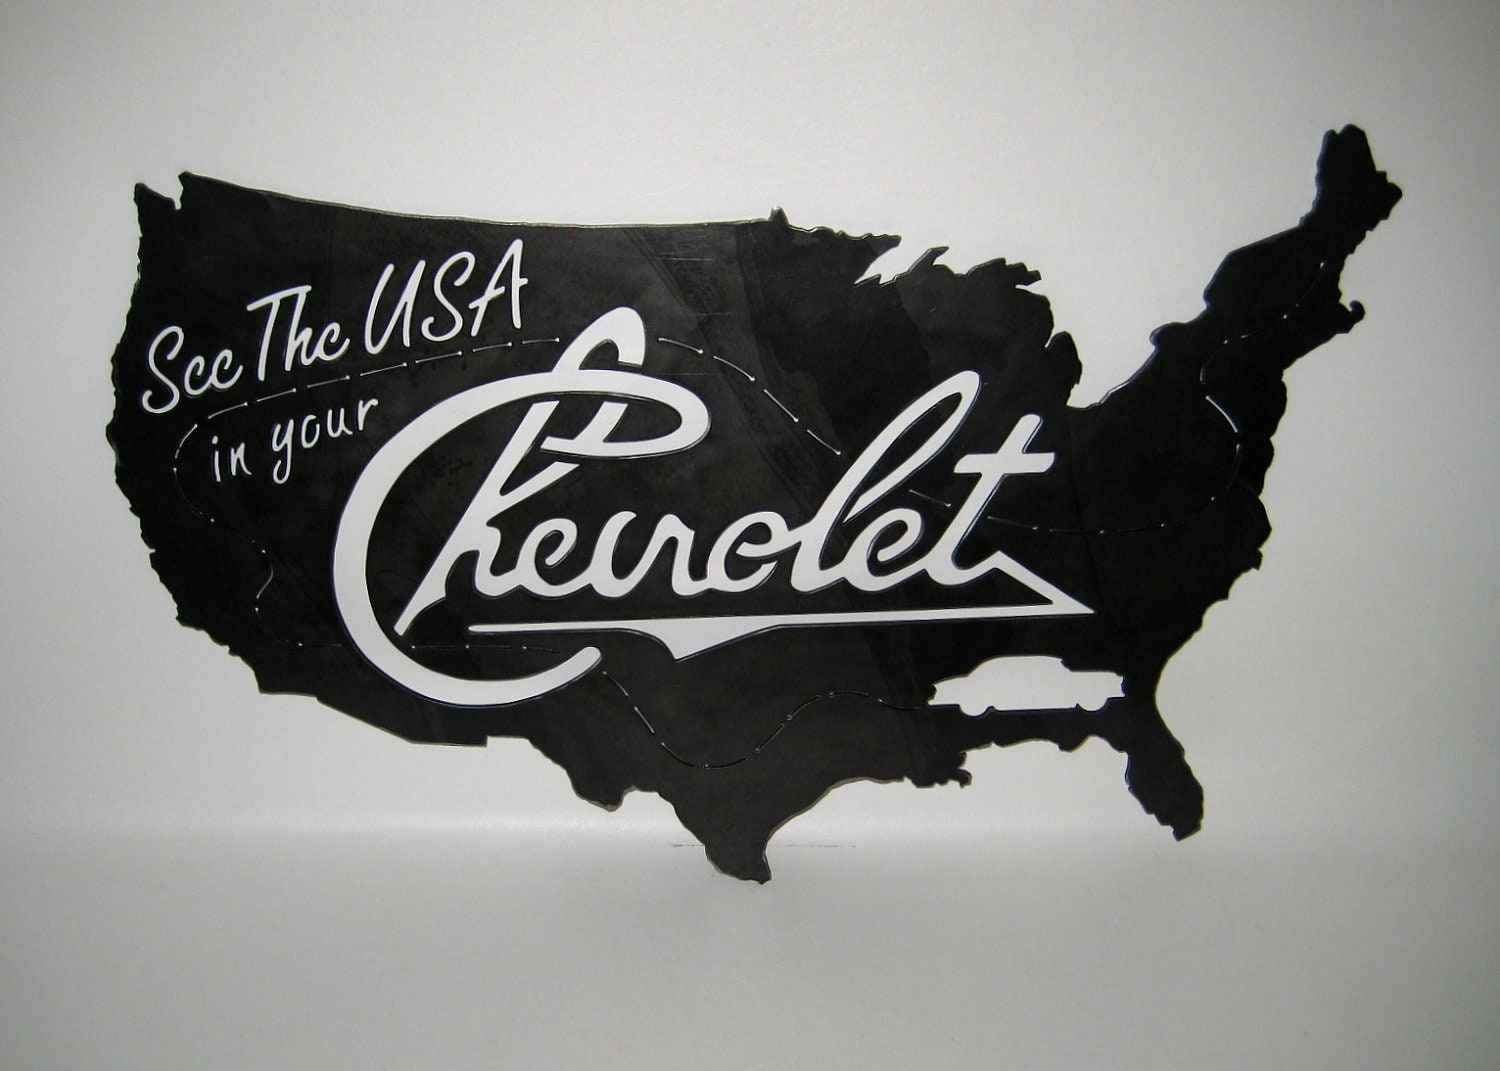 Worksheet. ON SALE See the USA in your Chevrolet Sign Steel Handmade